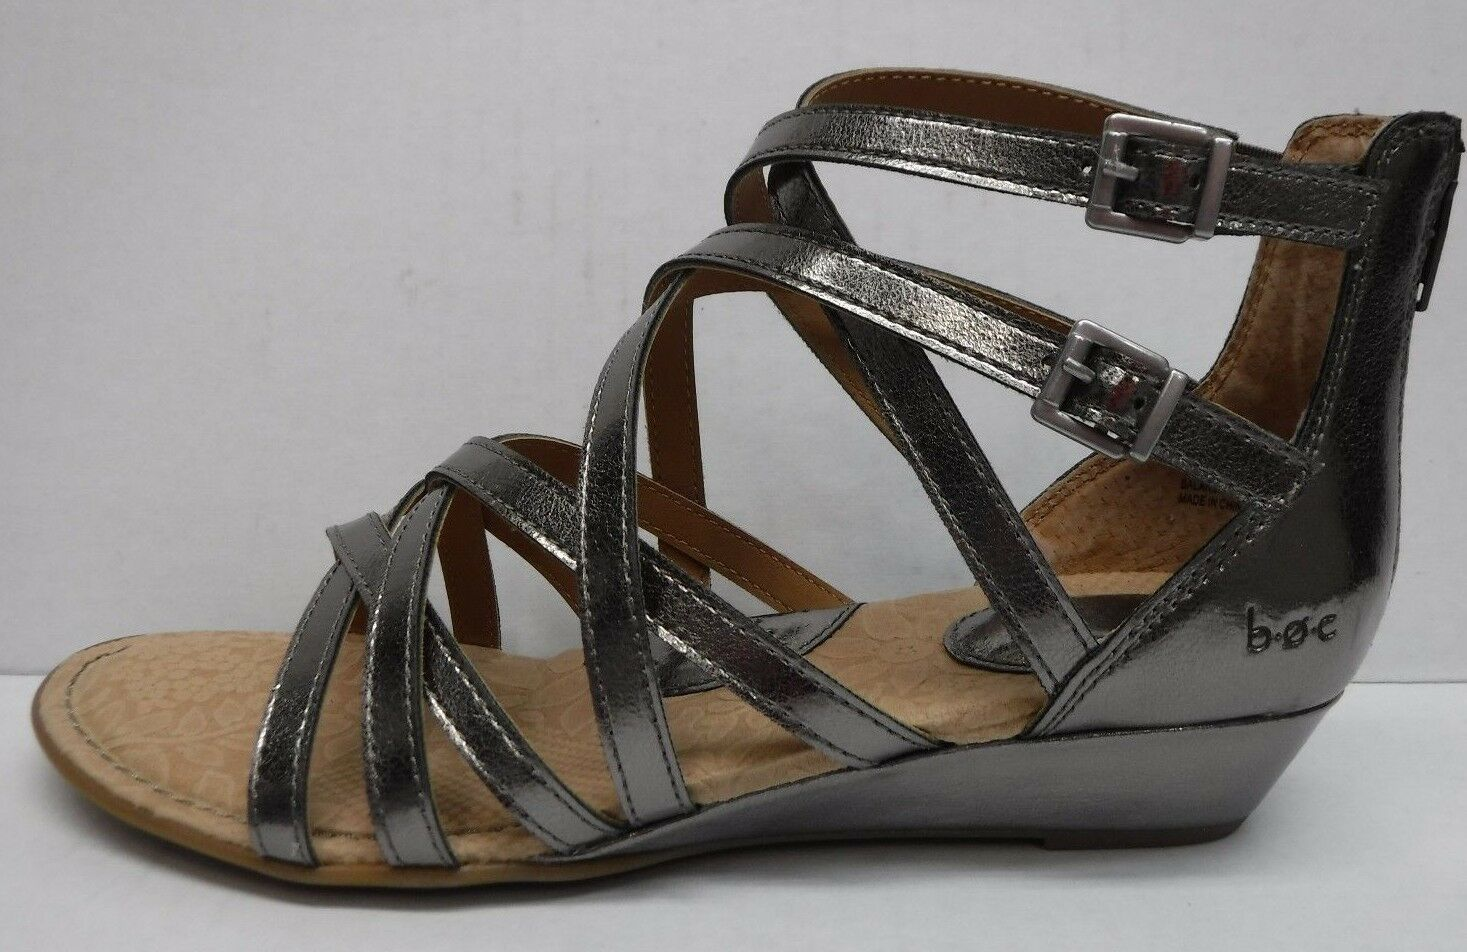 B.o.c Born Concepts Size 9 Pewter Gladiator Sandals New Donna Shoes